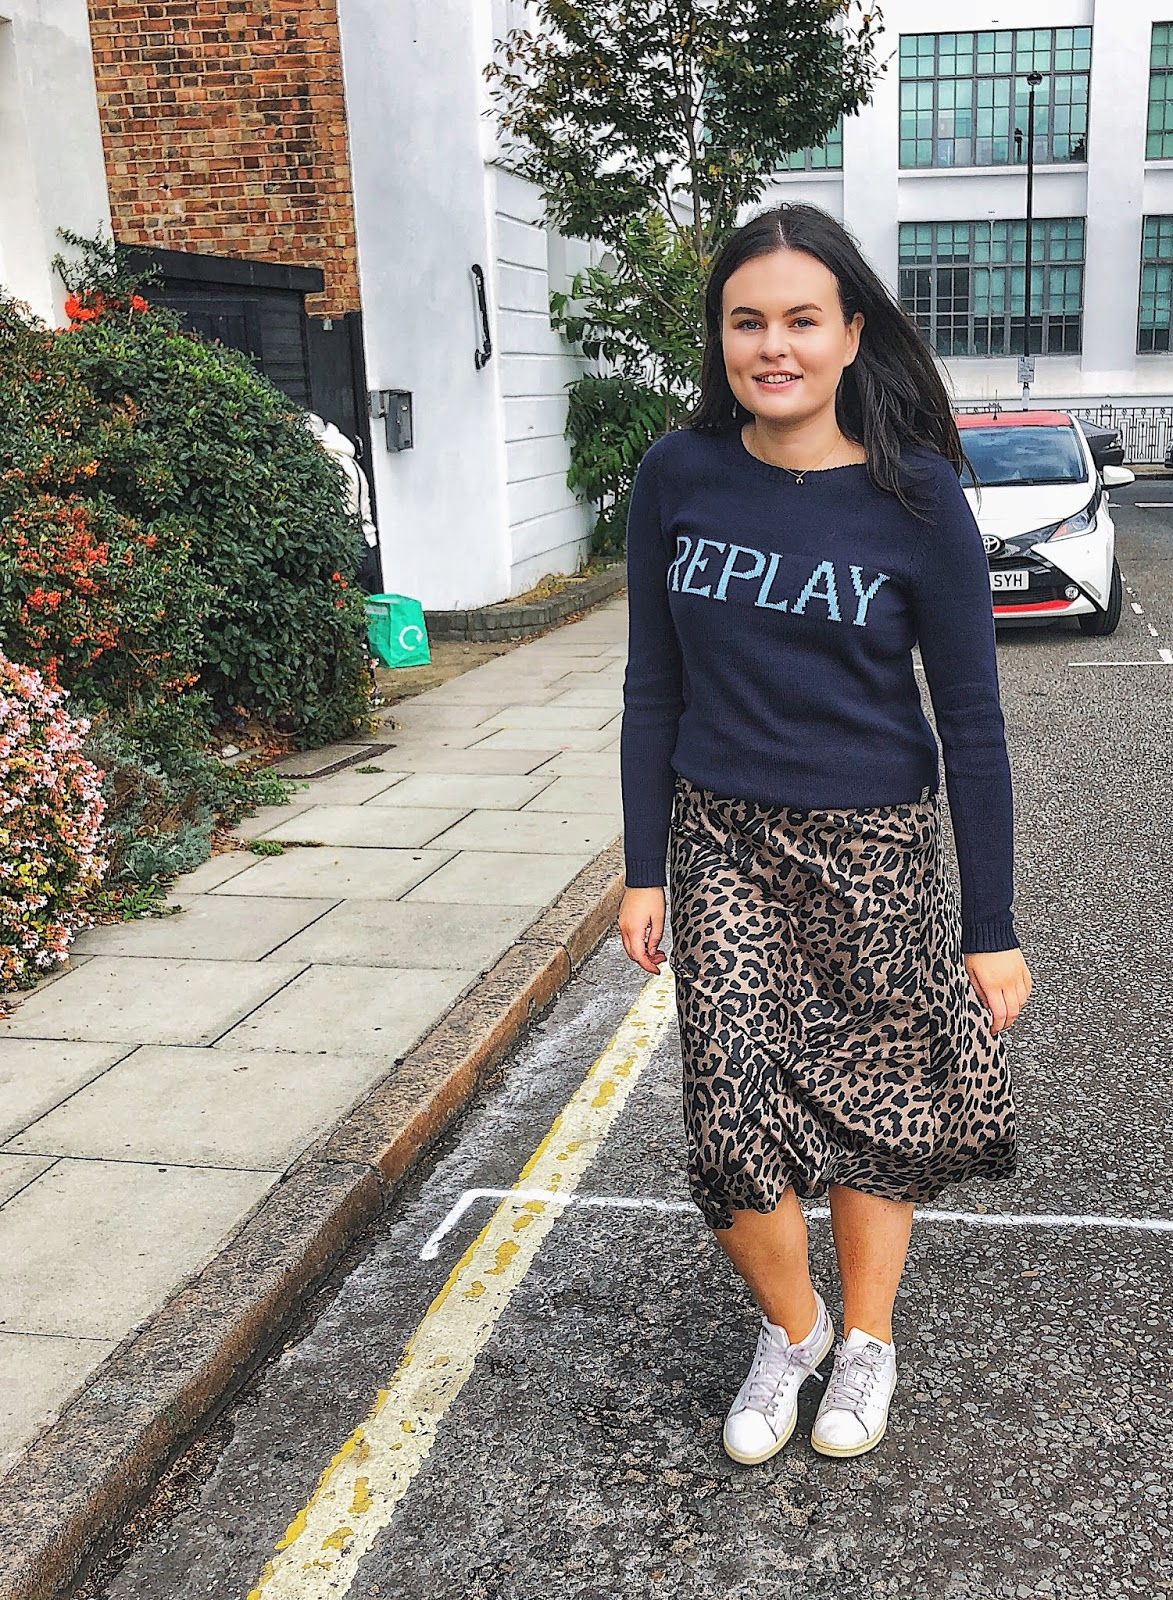 replay womens jumper, replay uk, asos leopard skirt, leopard midi skirt, asos sold out skirt , ootd, uk fashion blogger, autumn style 2018